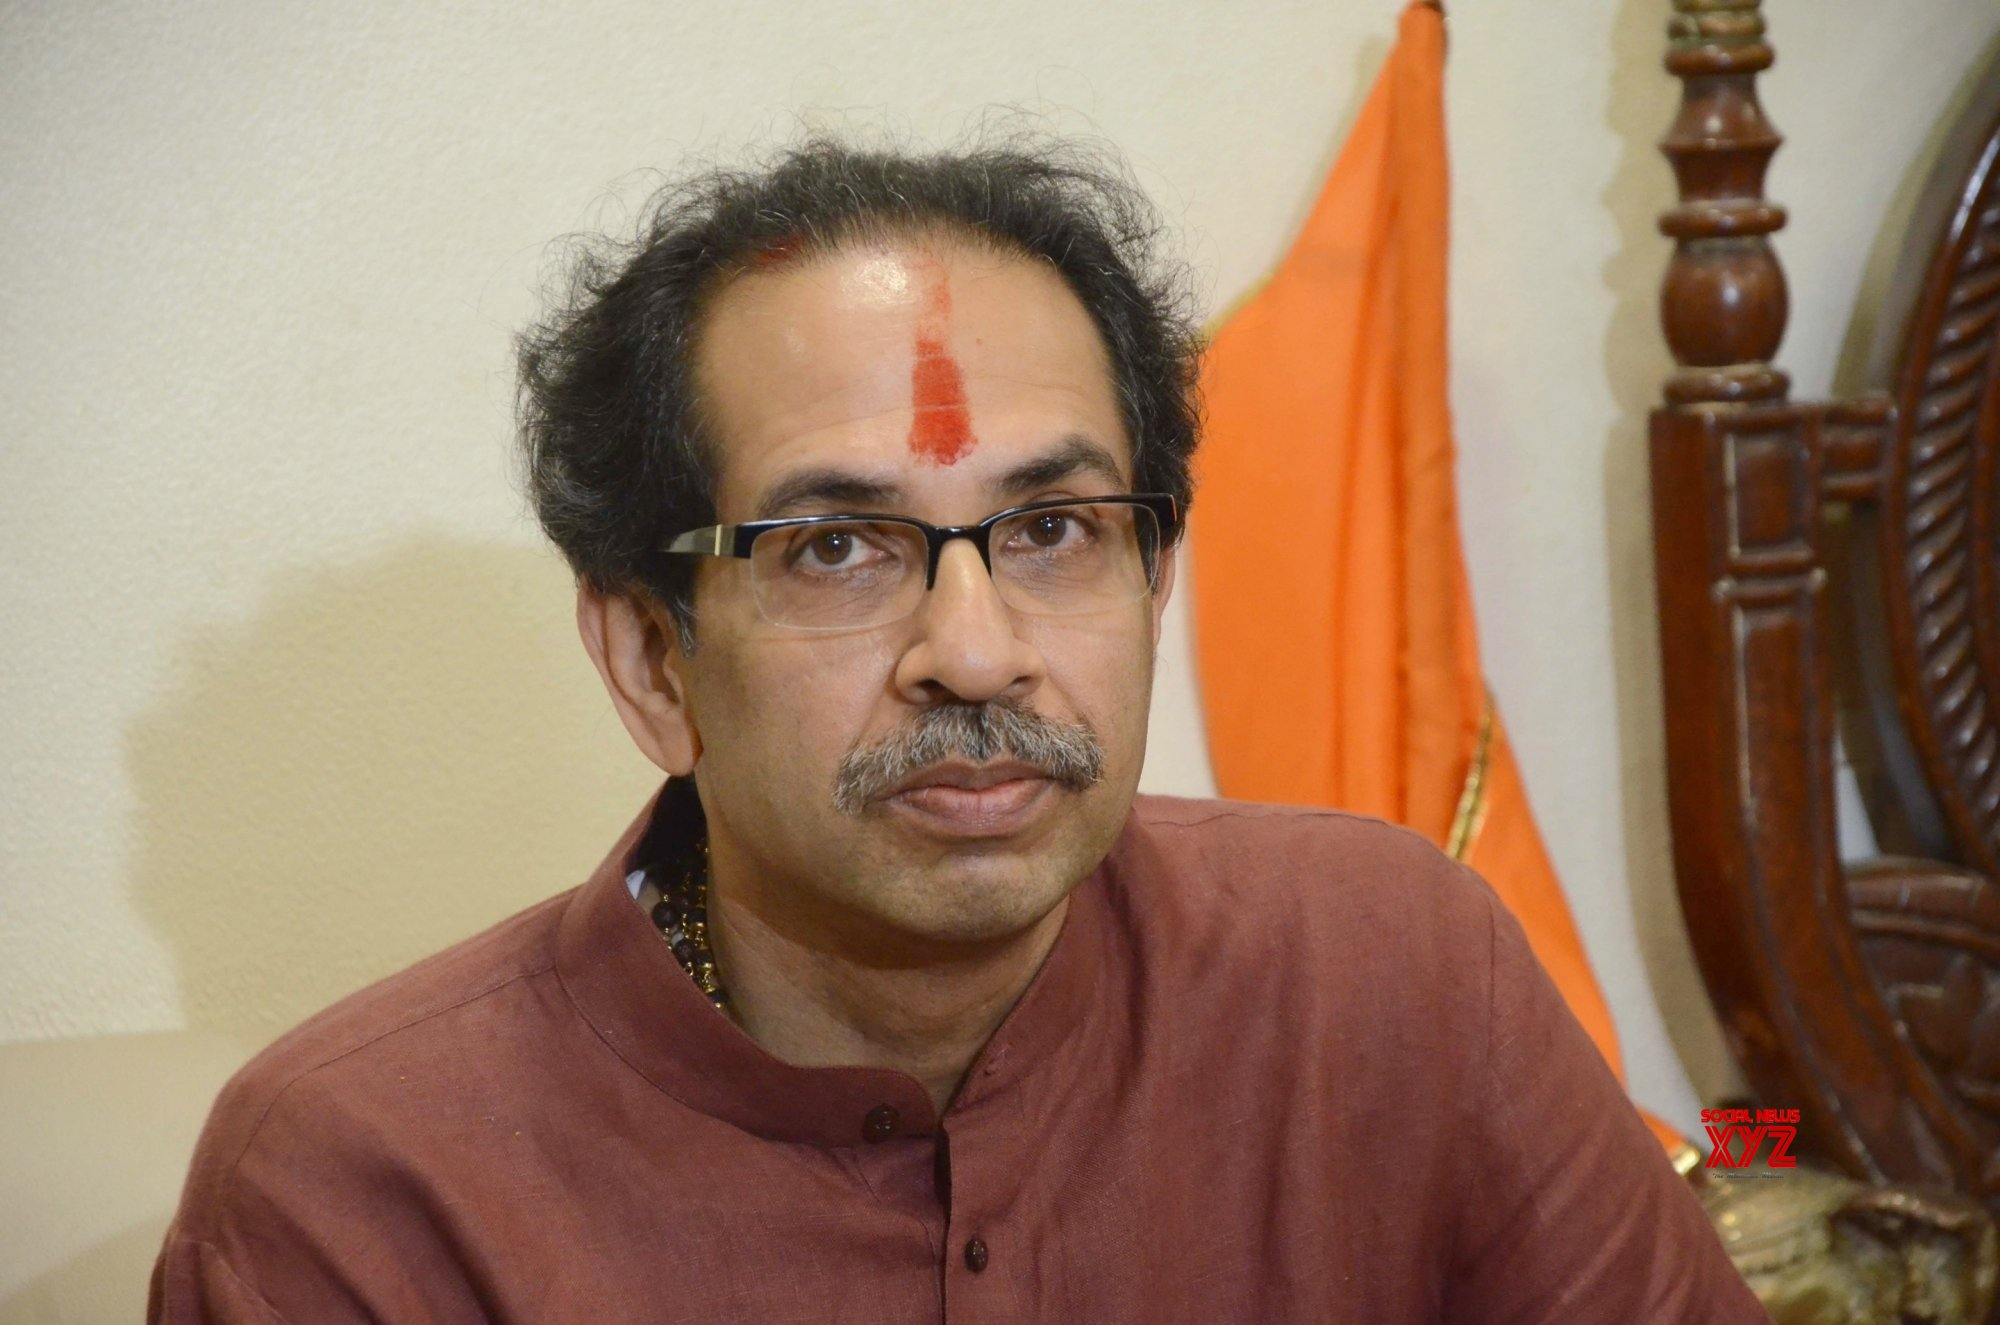 No mention of Ram temple in Congress manifesto: Thackeray